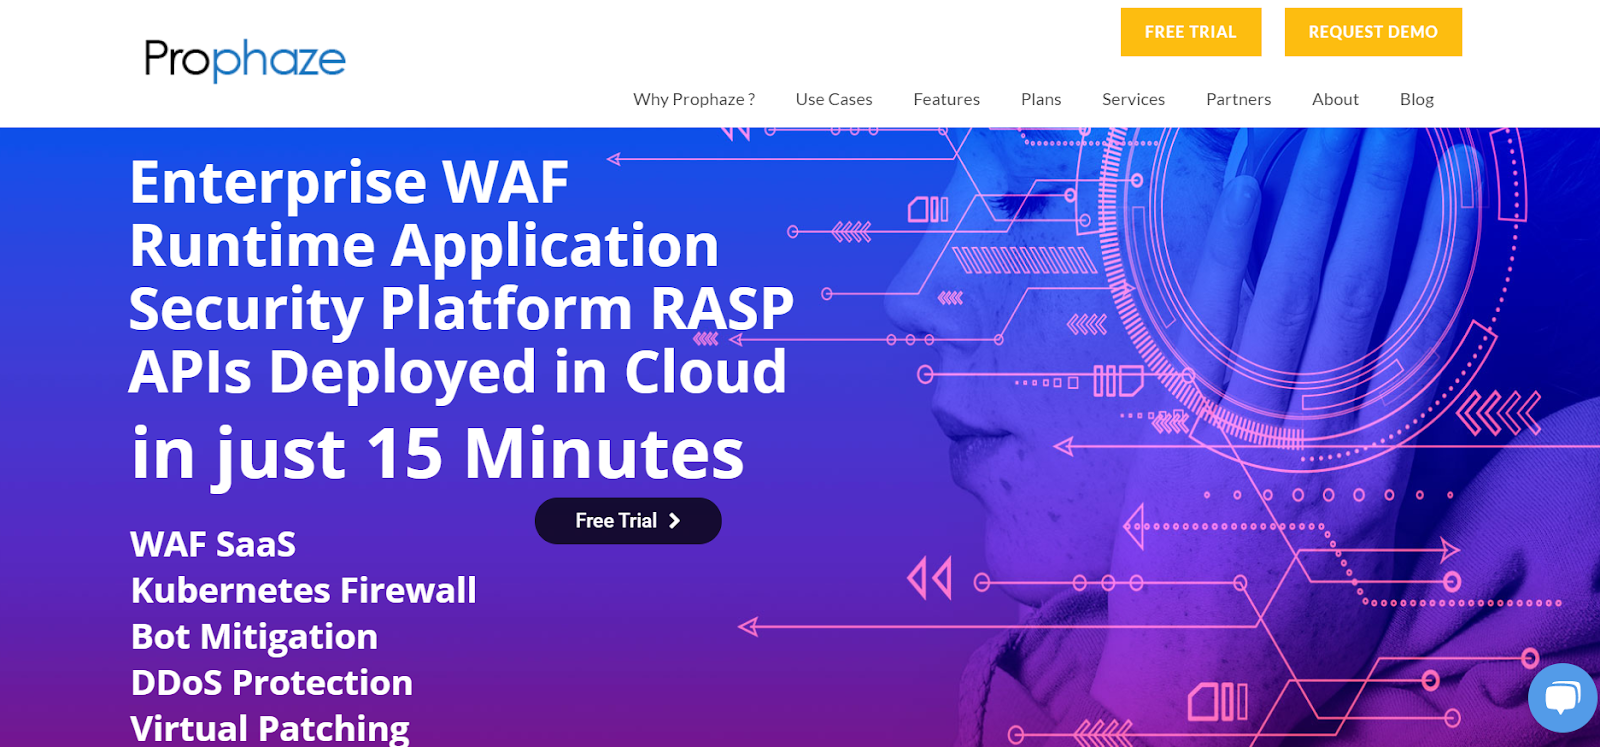 Prophaze WAF-As-A-Service is a Web Application Firewall Application